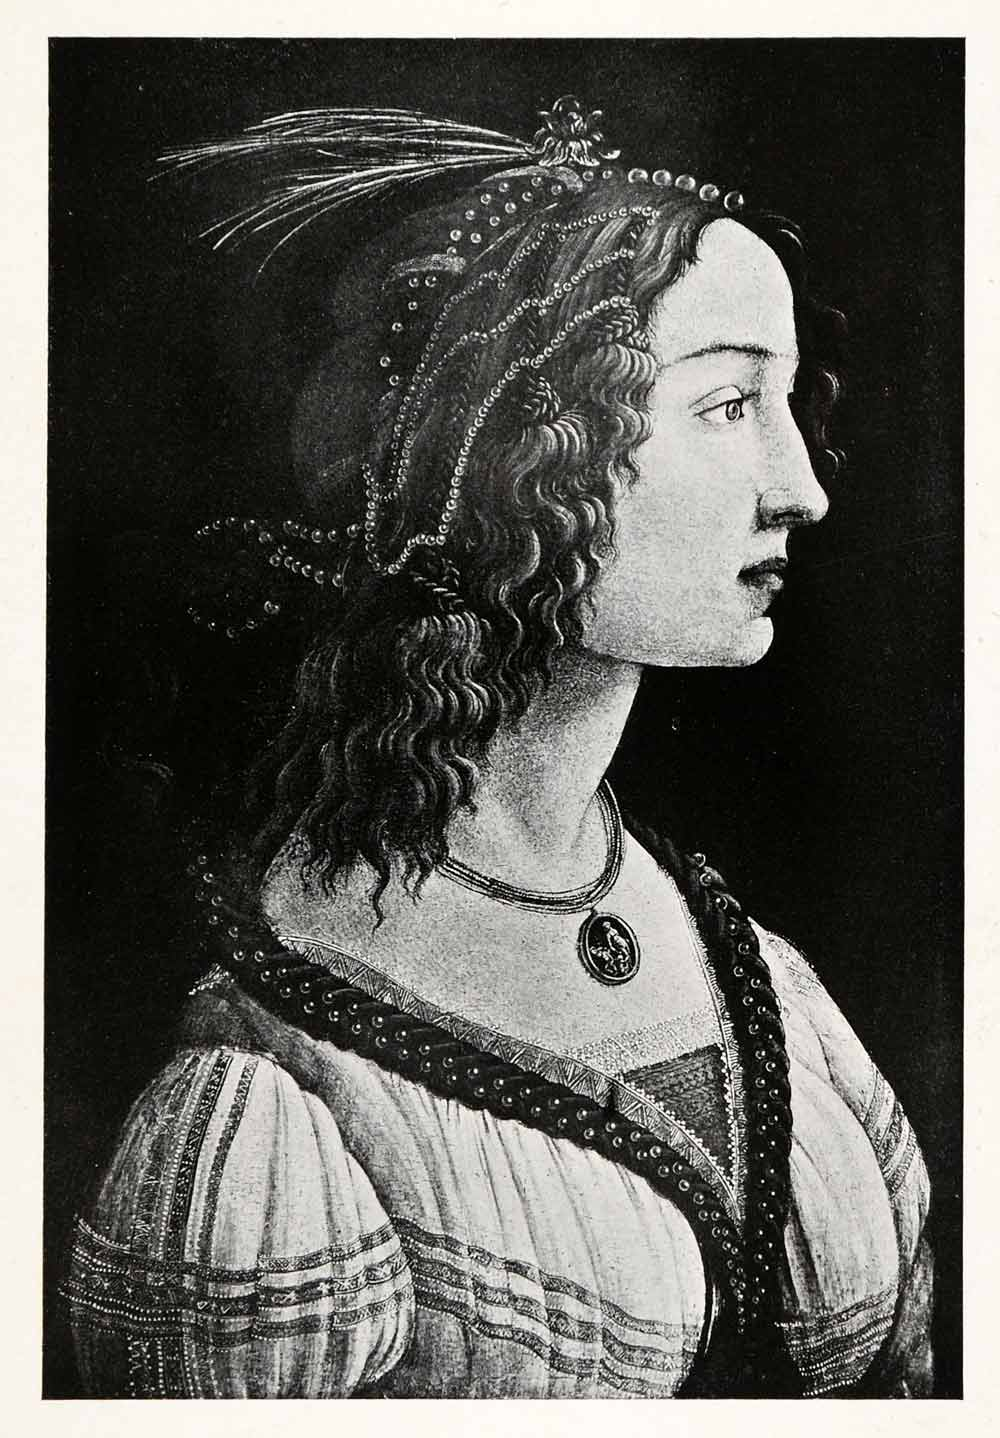 1903 Print Alessandro Botticelli Art Woman Side Portrait Historic Fashion XAF1